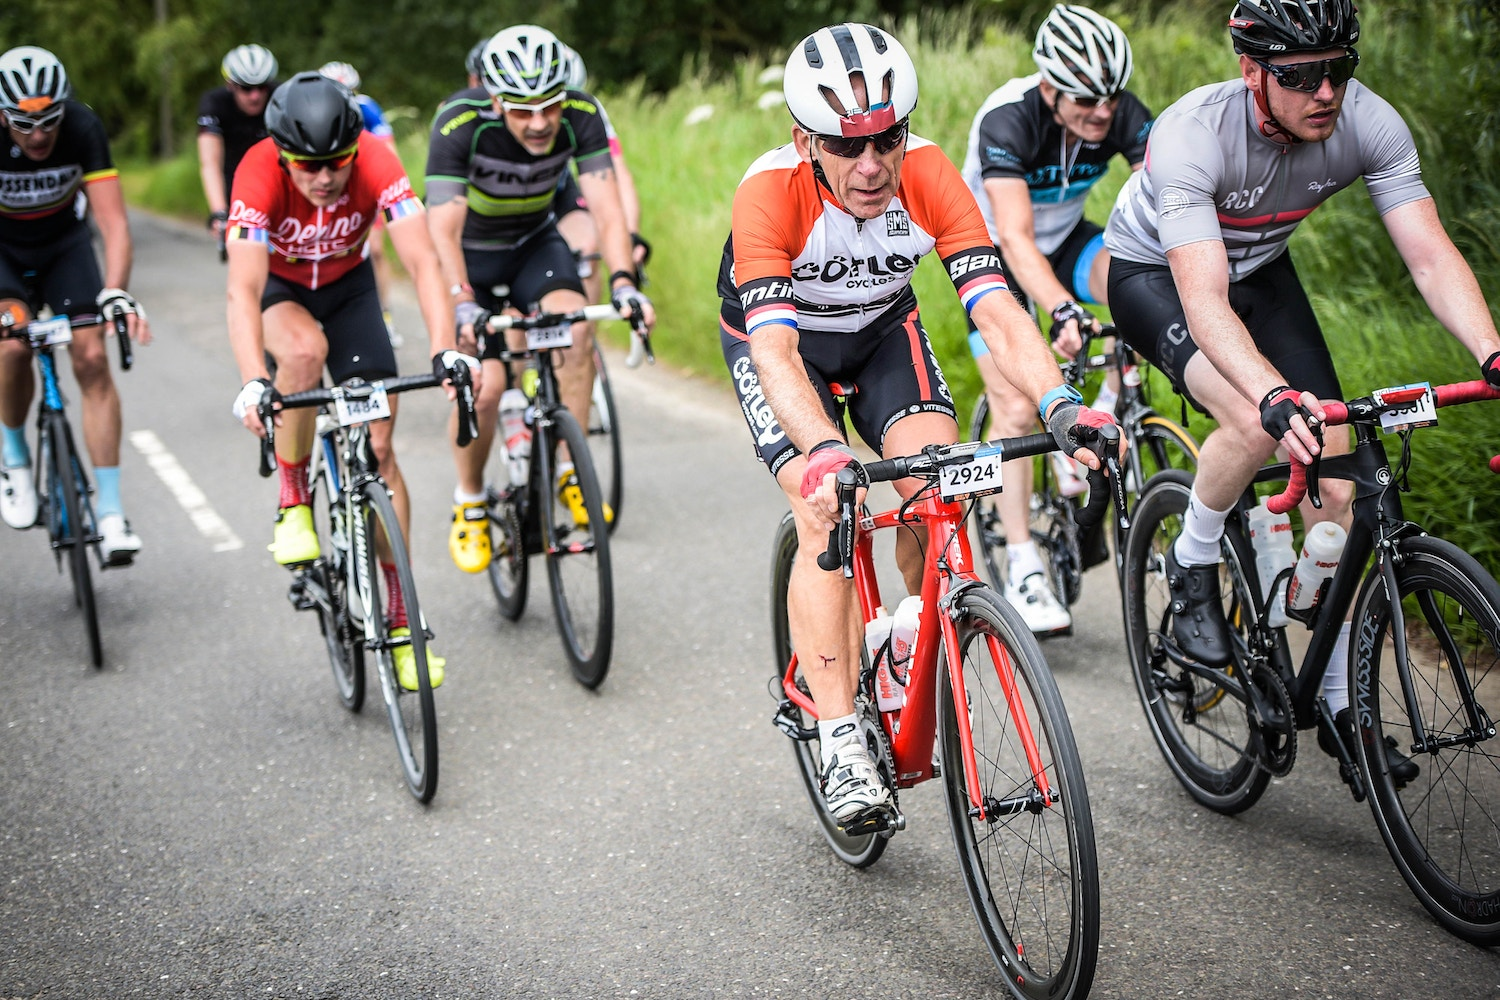 Tour of Cambridgeshire - From the Hot Seat